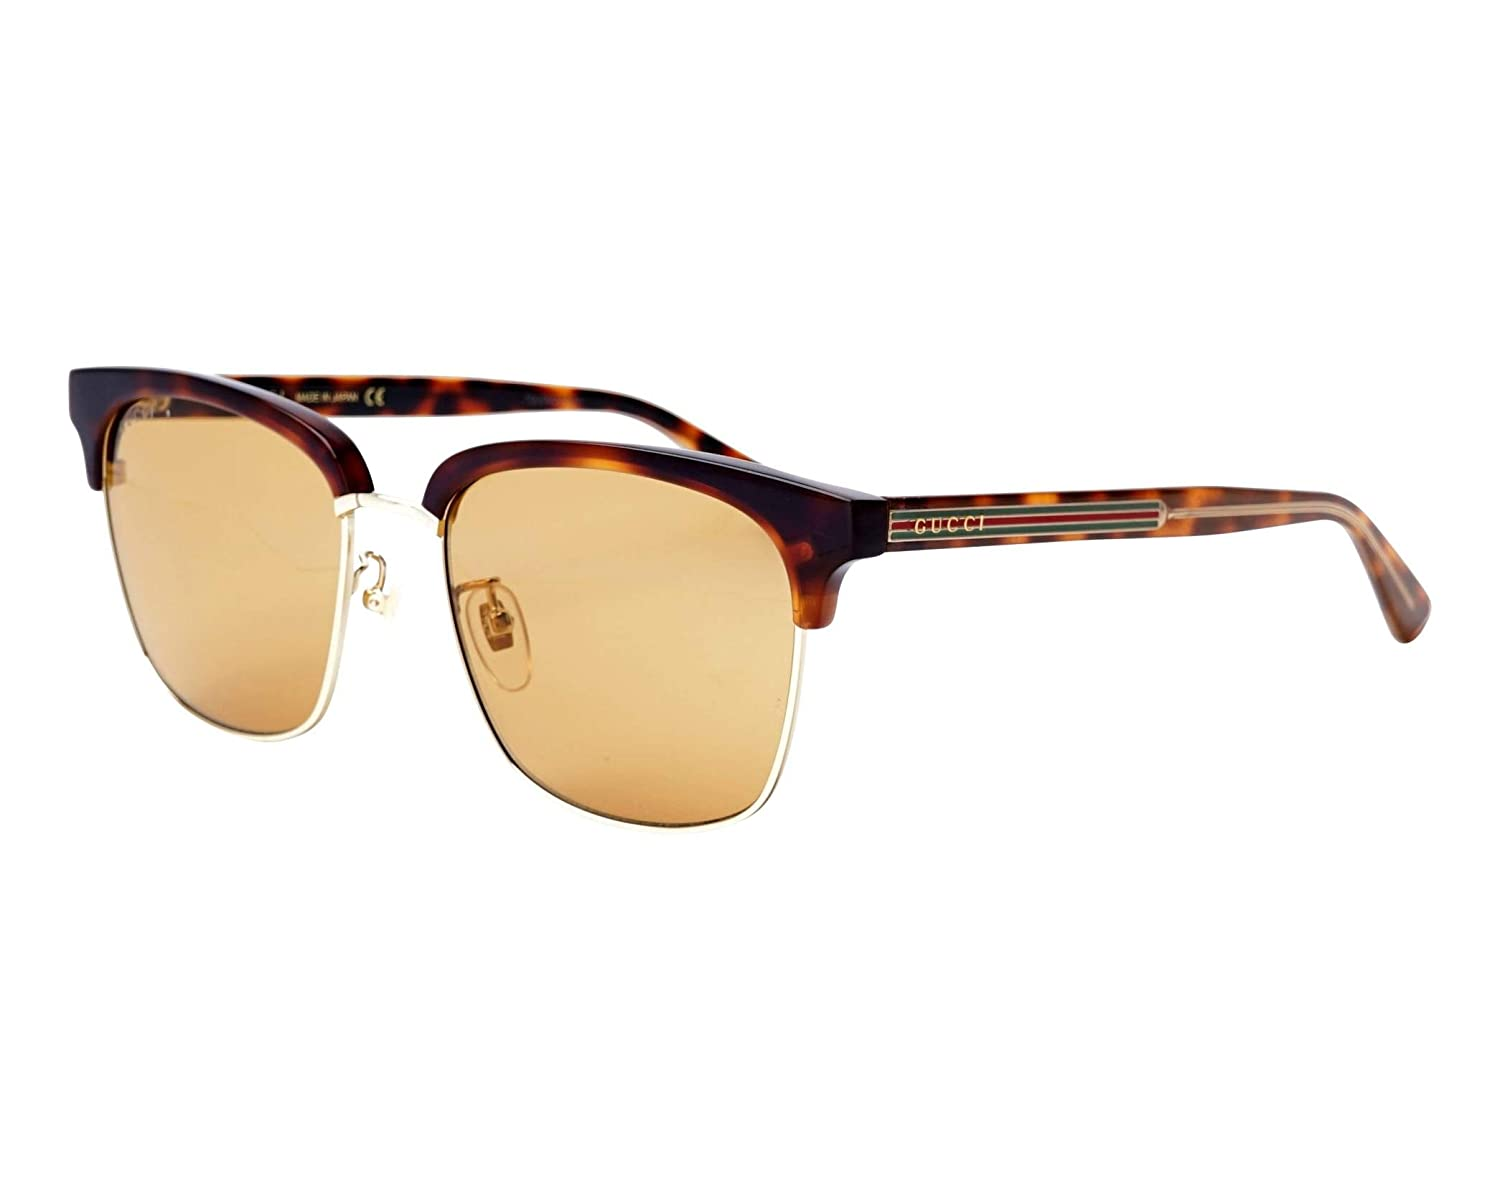 938348a545c Amazon.com  Gucci GG 0382S 004 Havana Gold Plastic Square Sunglasses Light  Brown Lens  Clothing